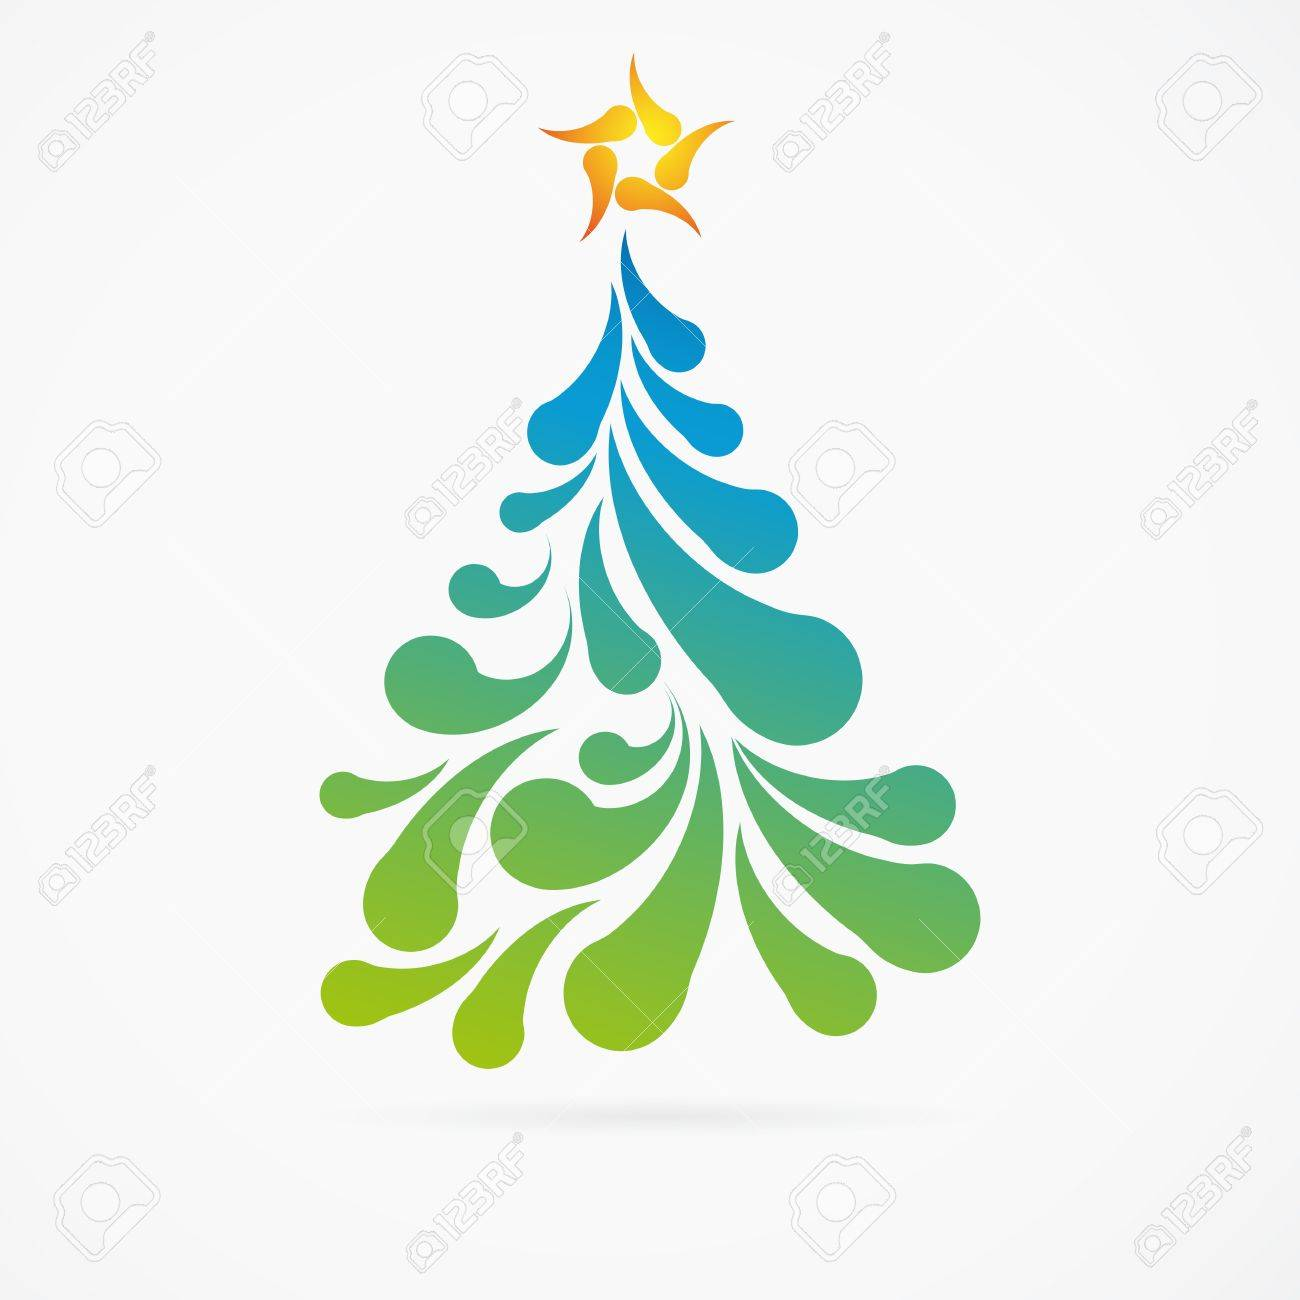 Christmas tree made of colorful arc drops. Decorative background. Stock Vector - 16594521